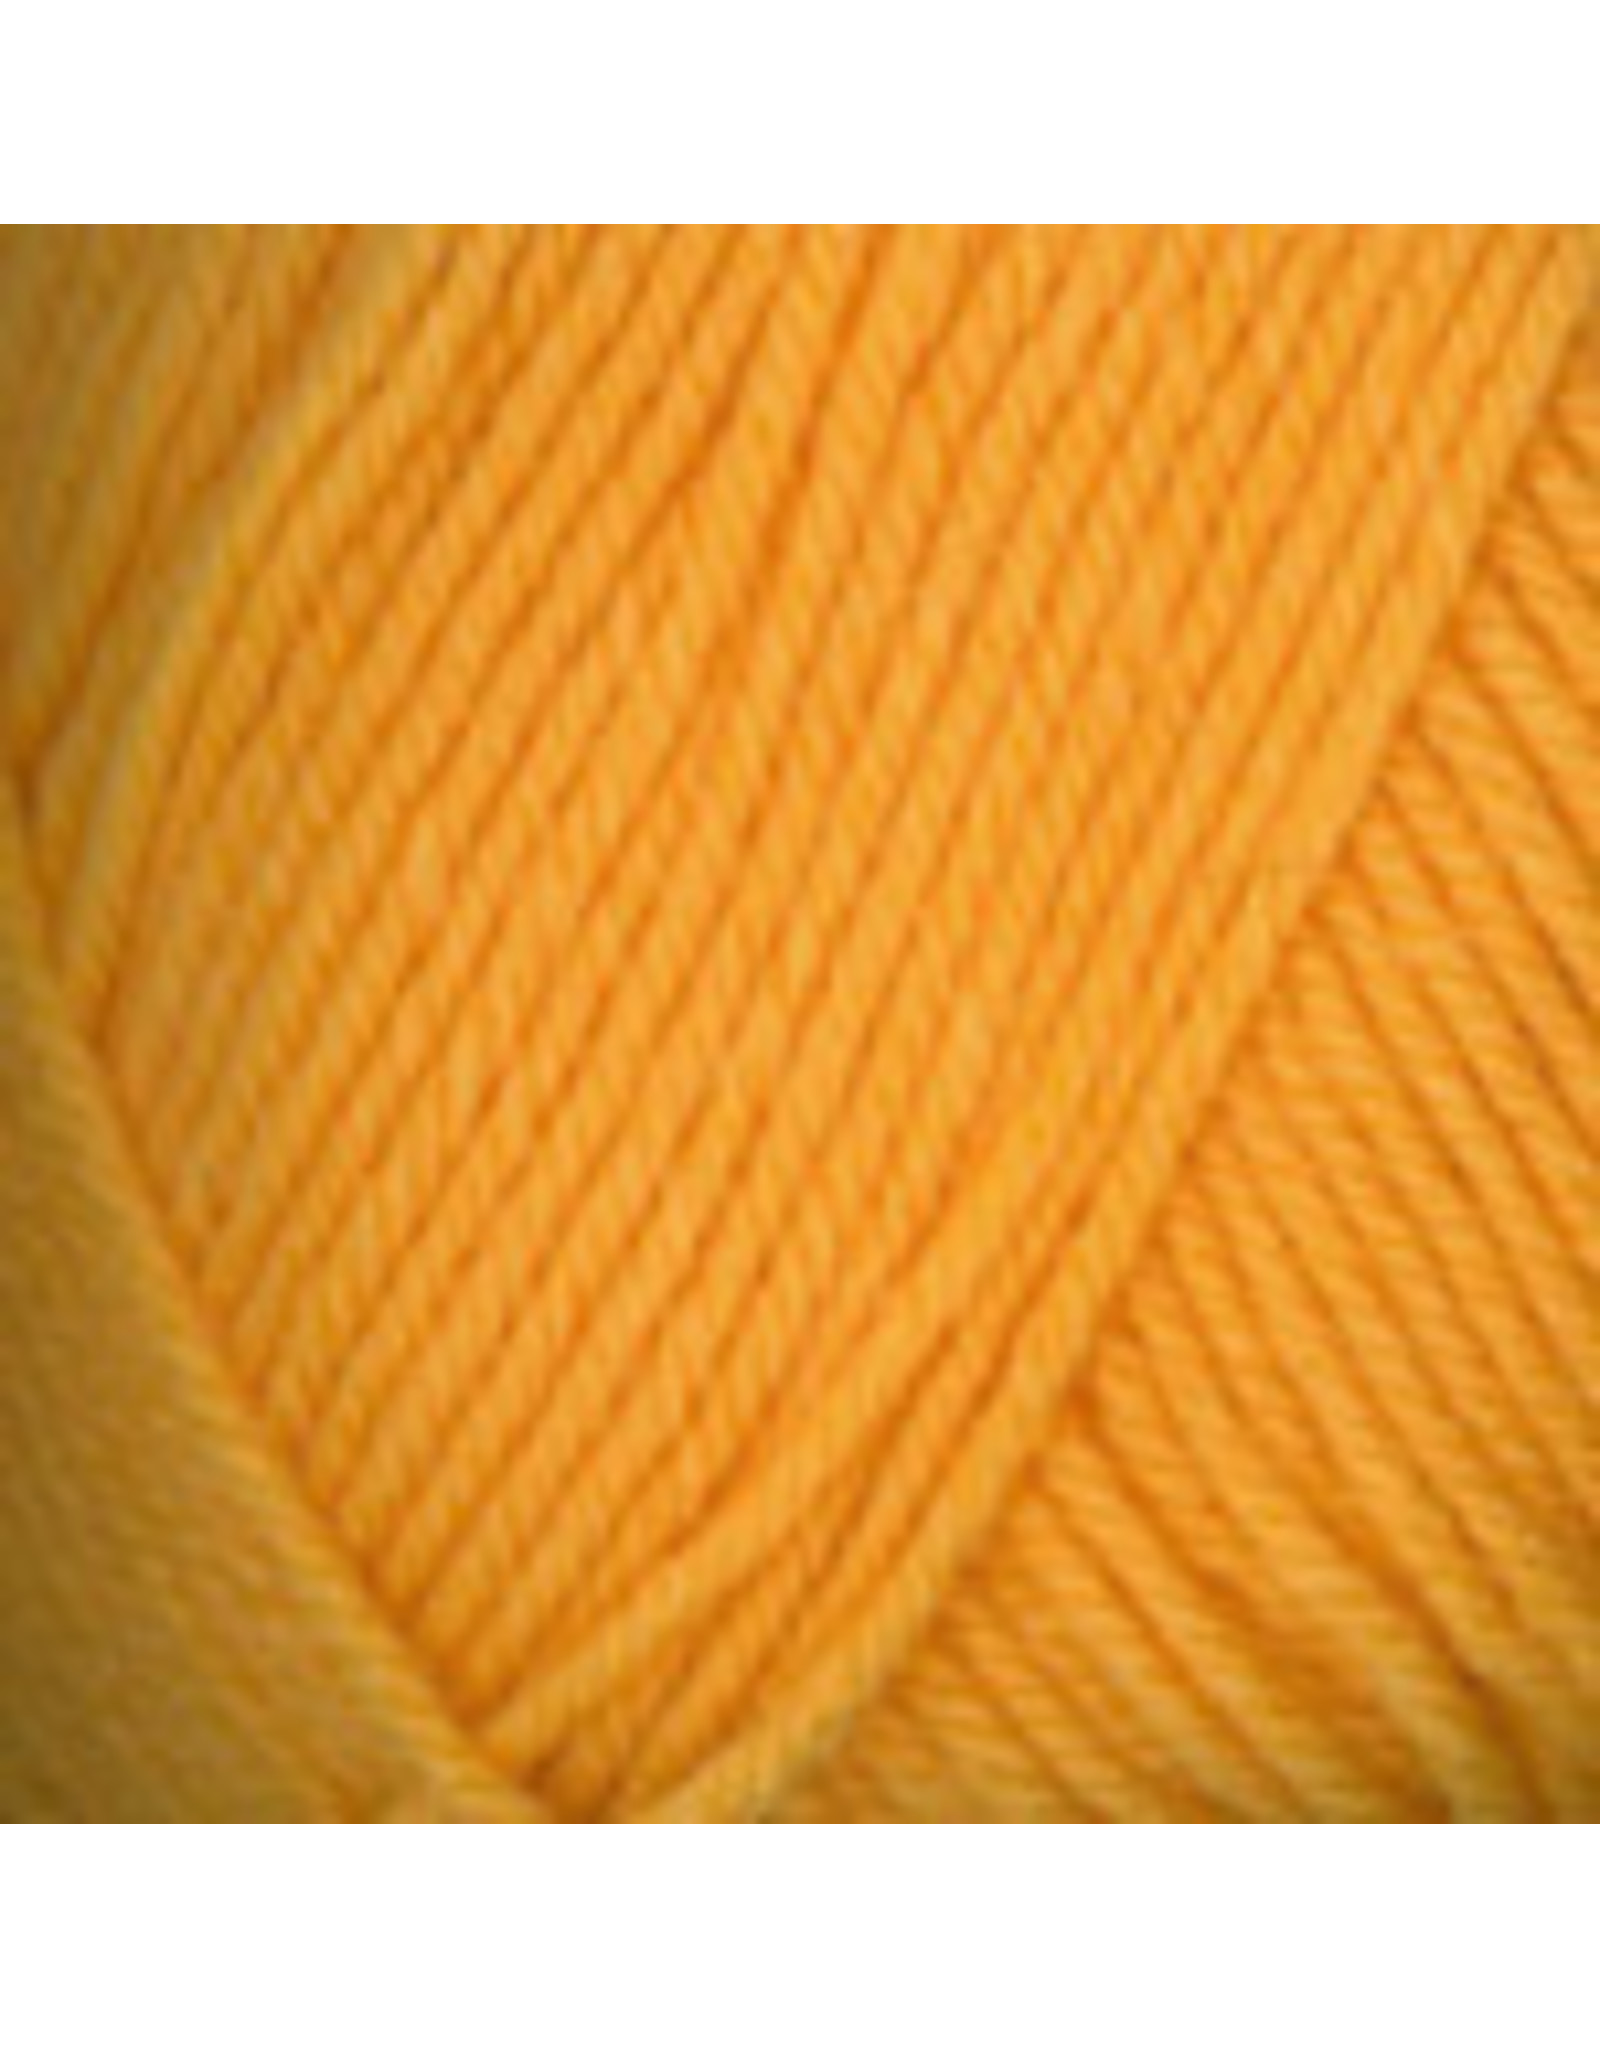 Plymouth Yarn Plymouth: Dreambaby DK, (Yellows & Oranges)